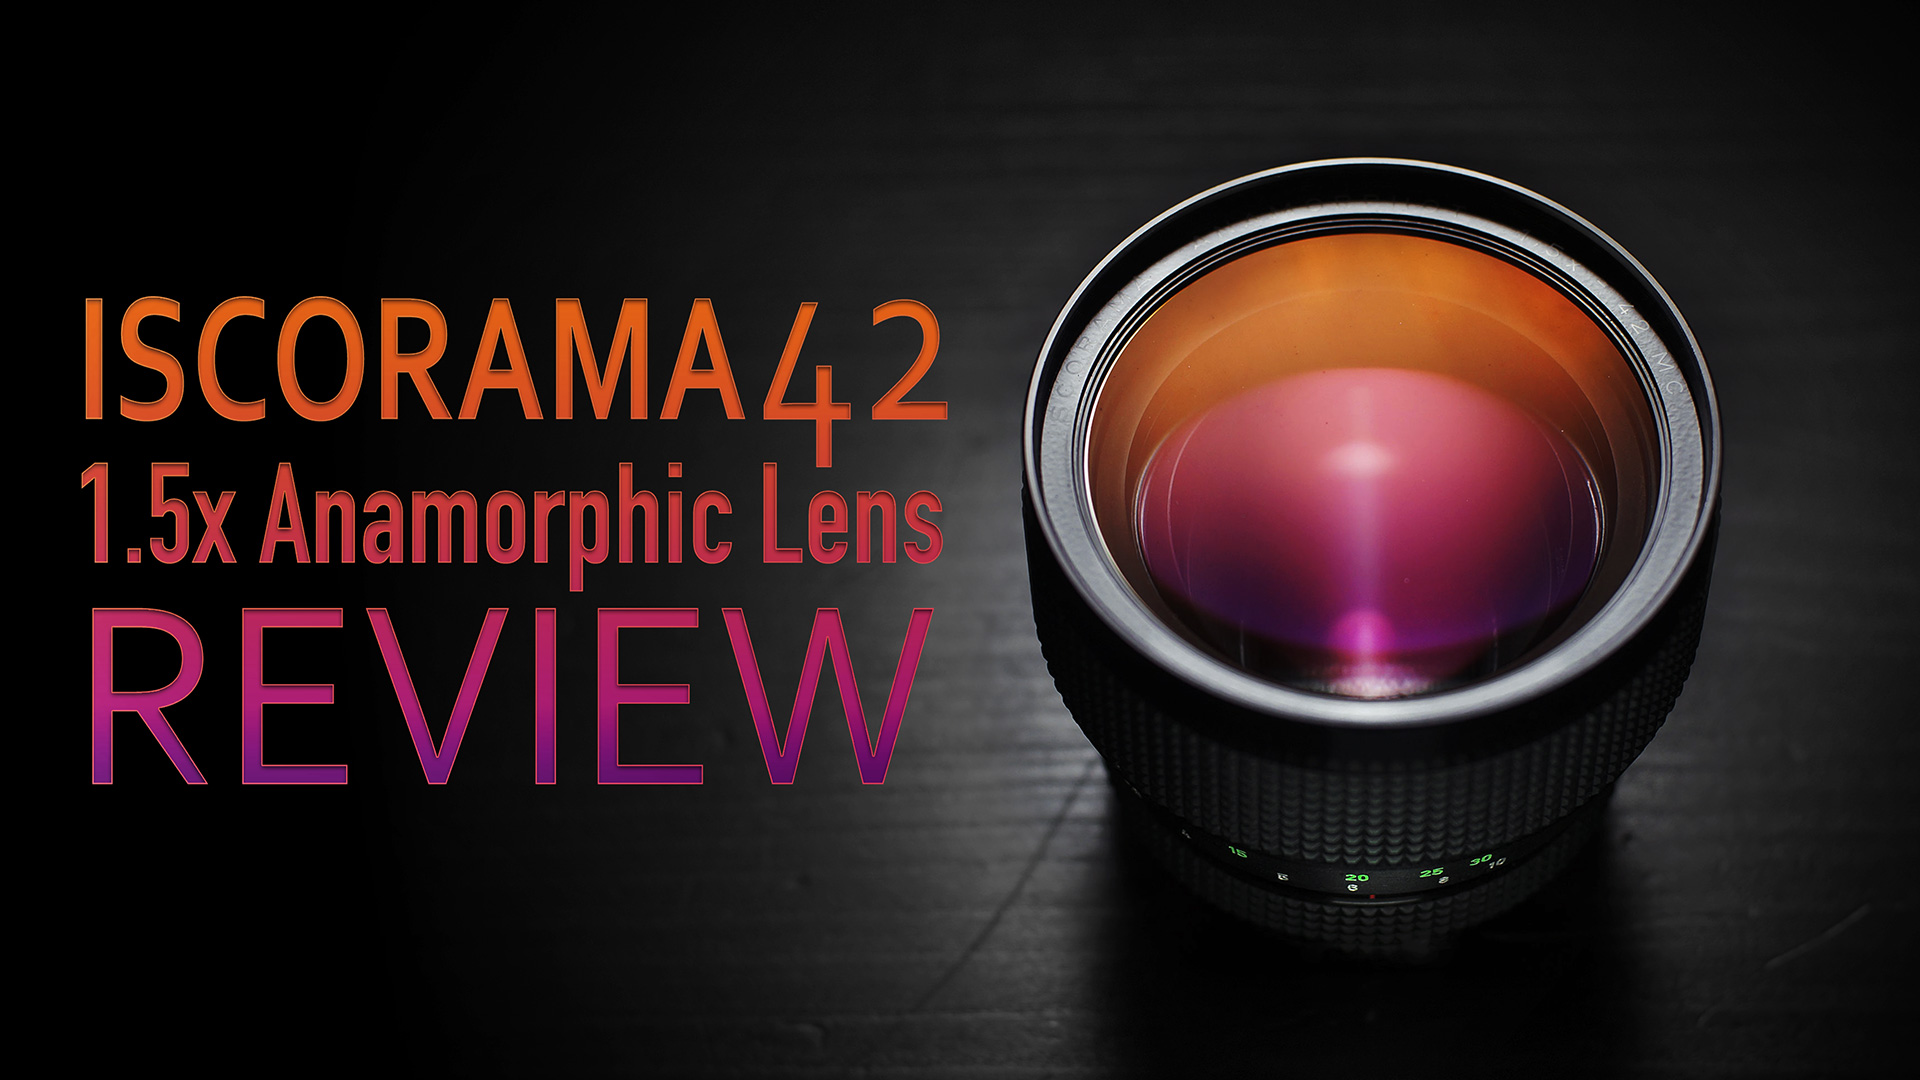 ISCORAMA 42 MC 1.5x Anamorphic Lens Review